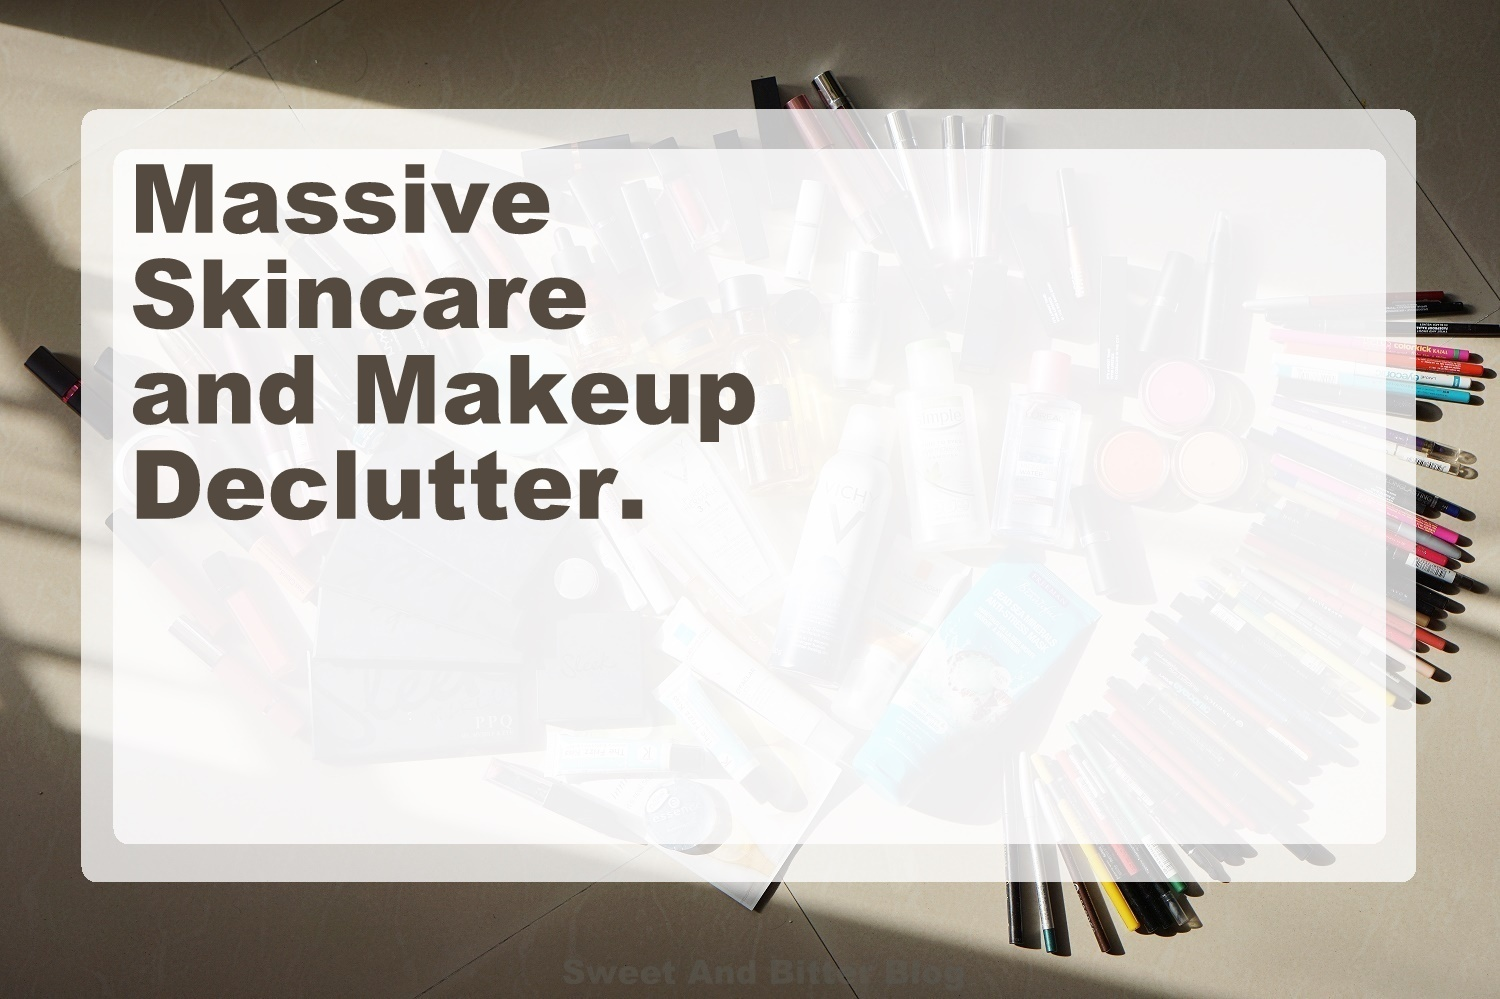 Massive Skincare and Makeup Declutter